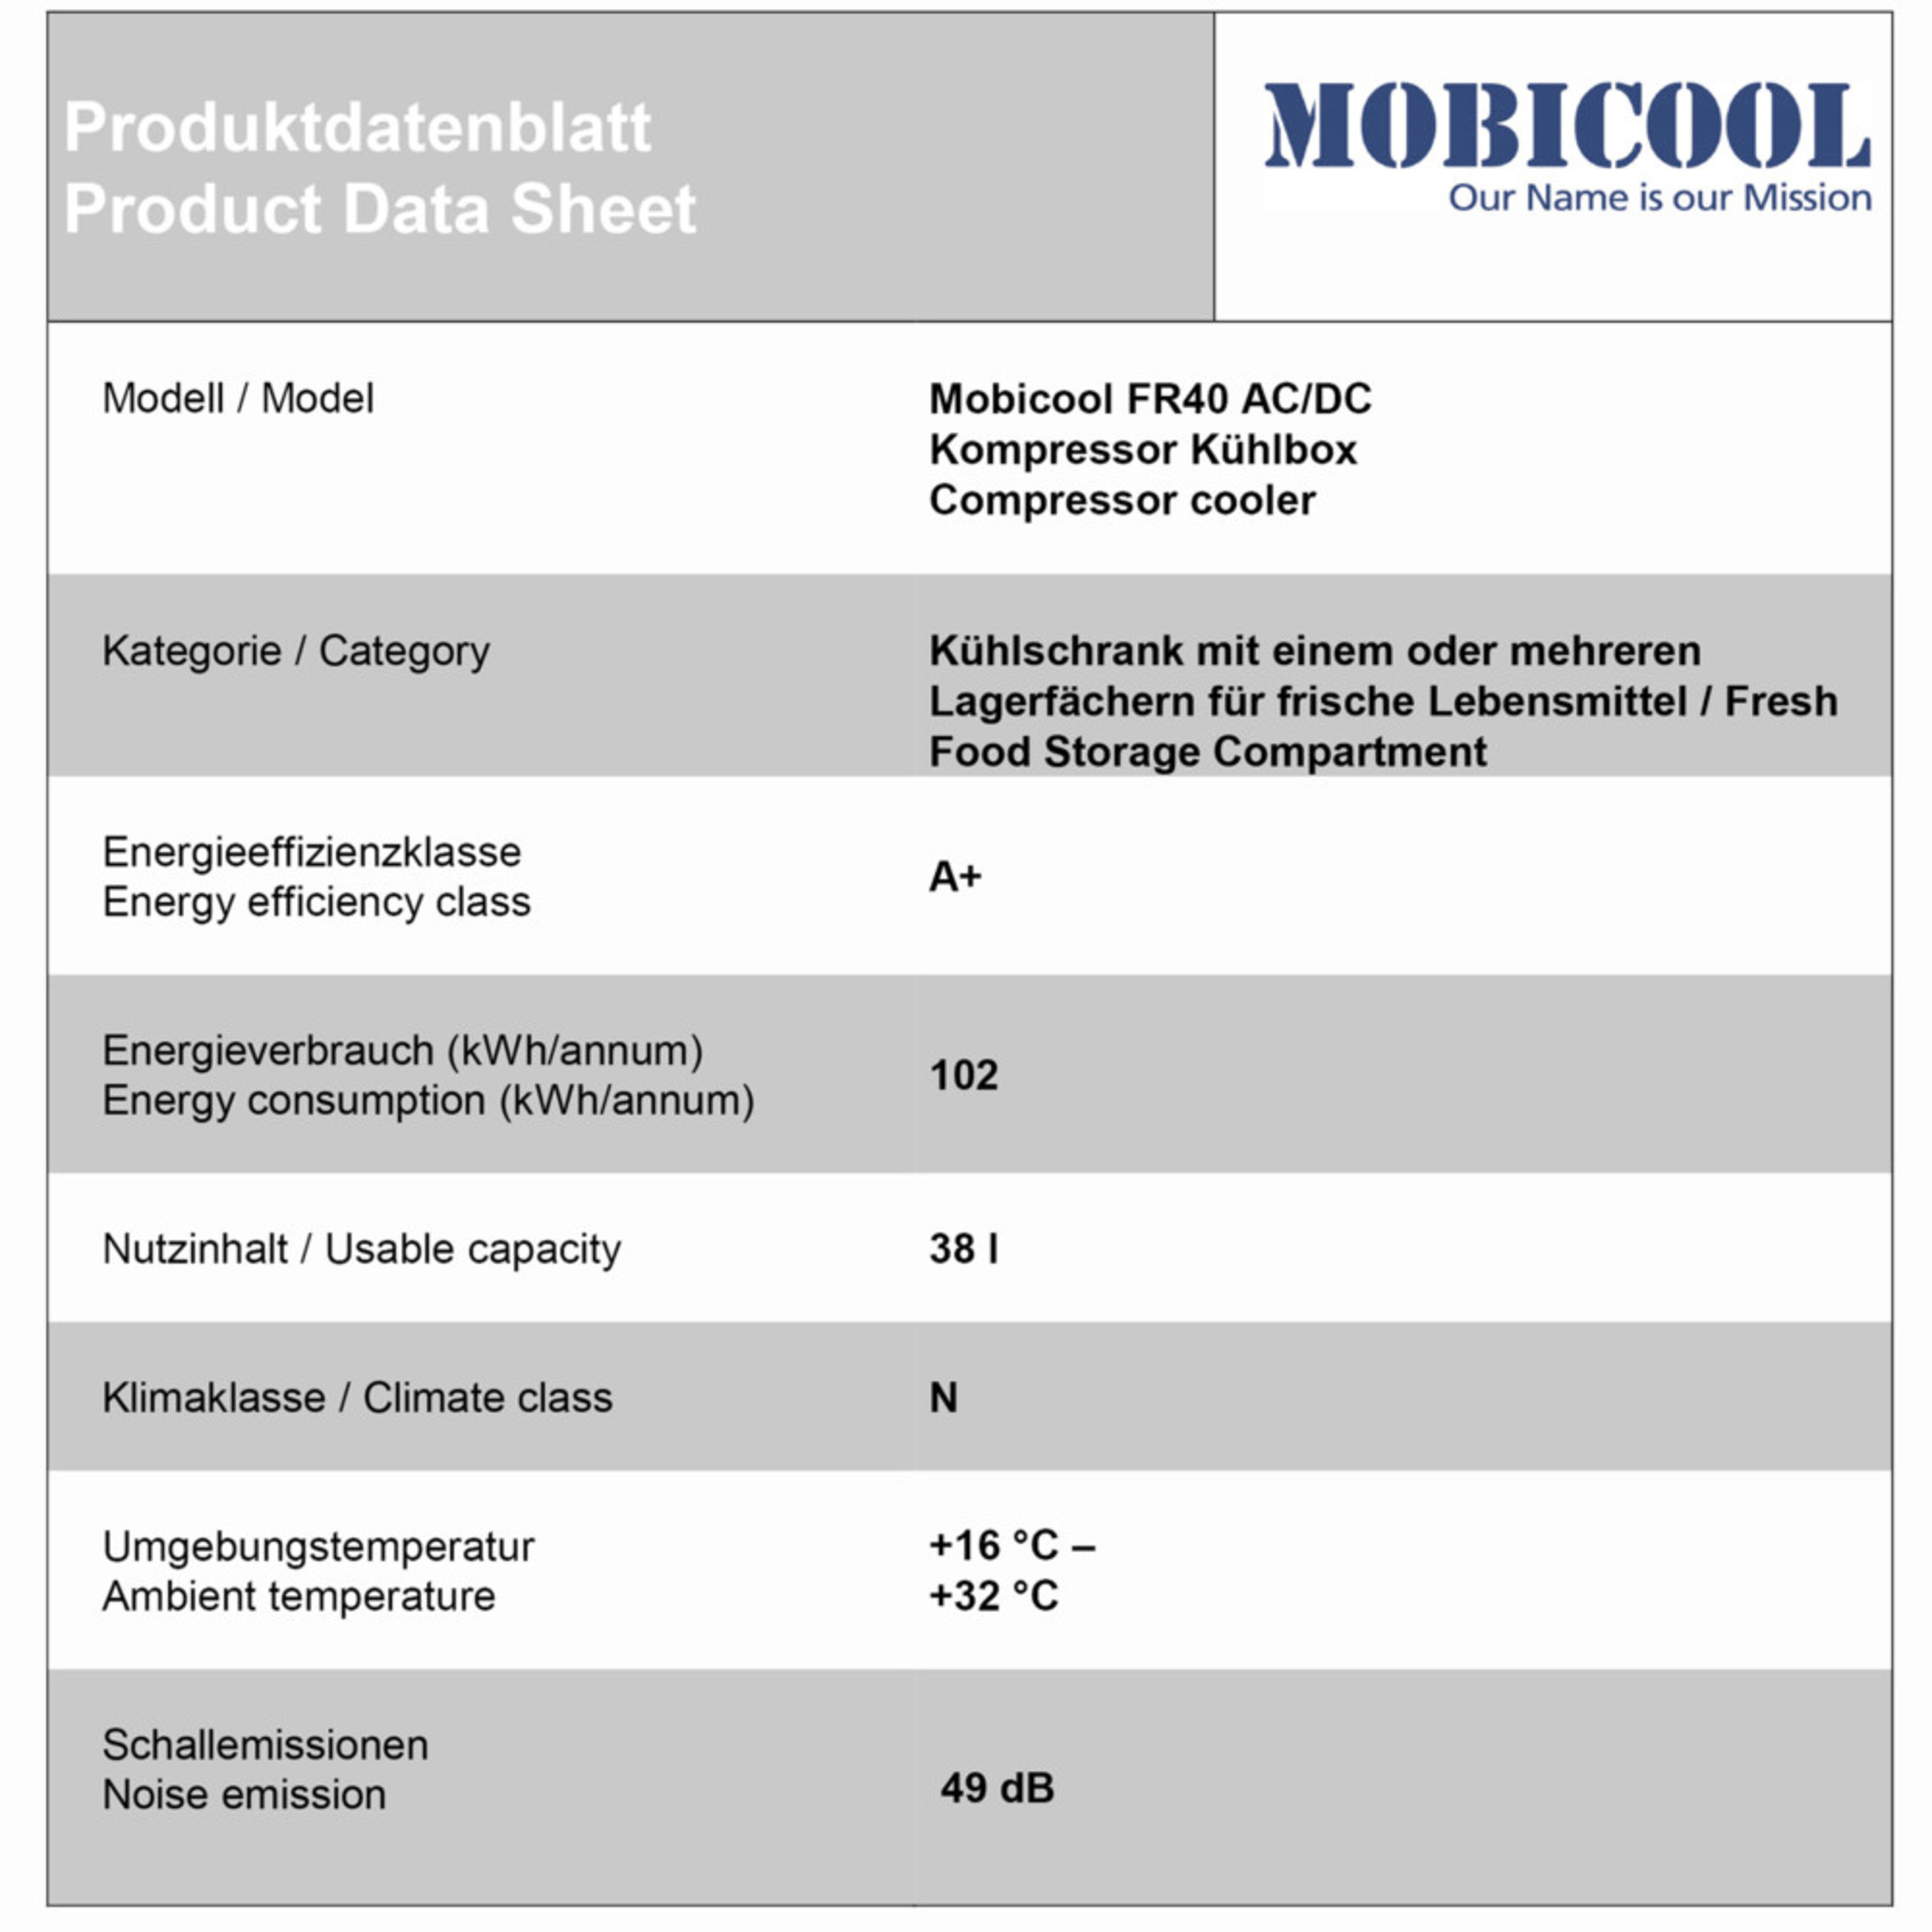 Mobicool FR40 Energy data sheet